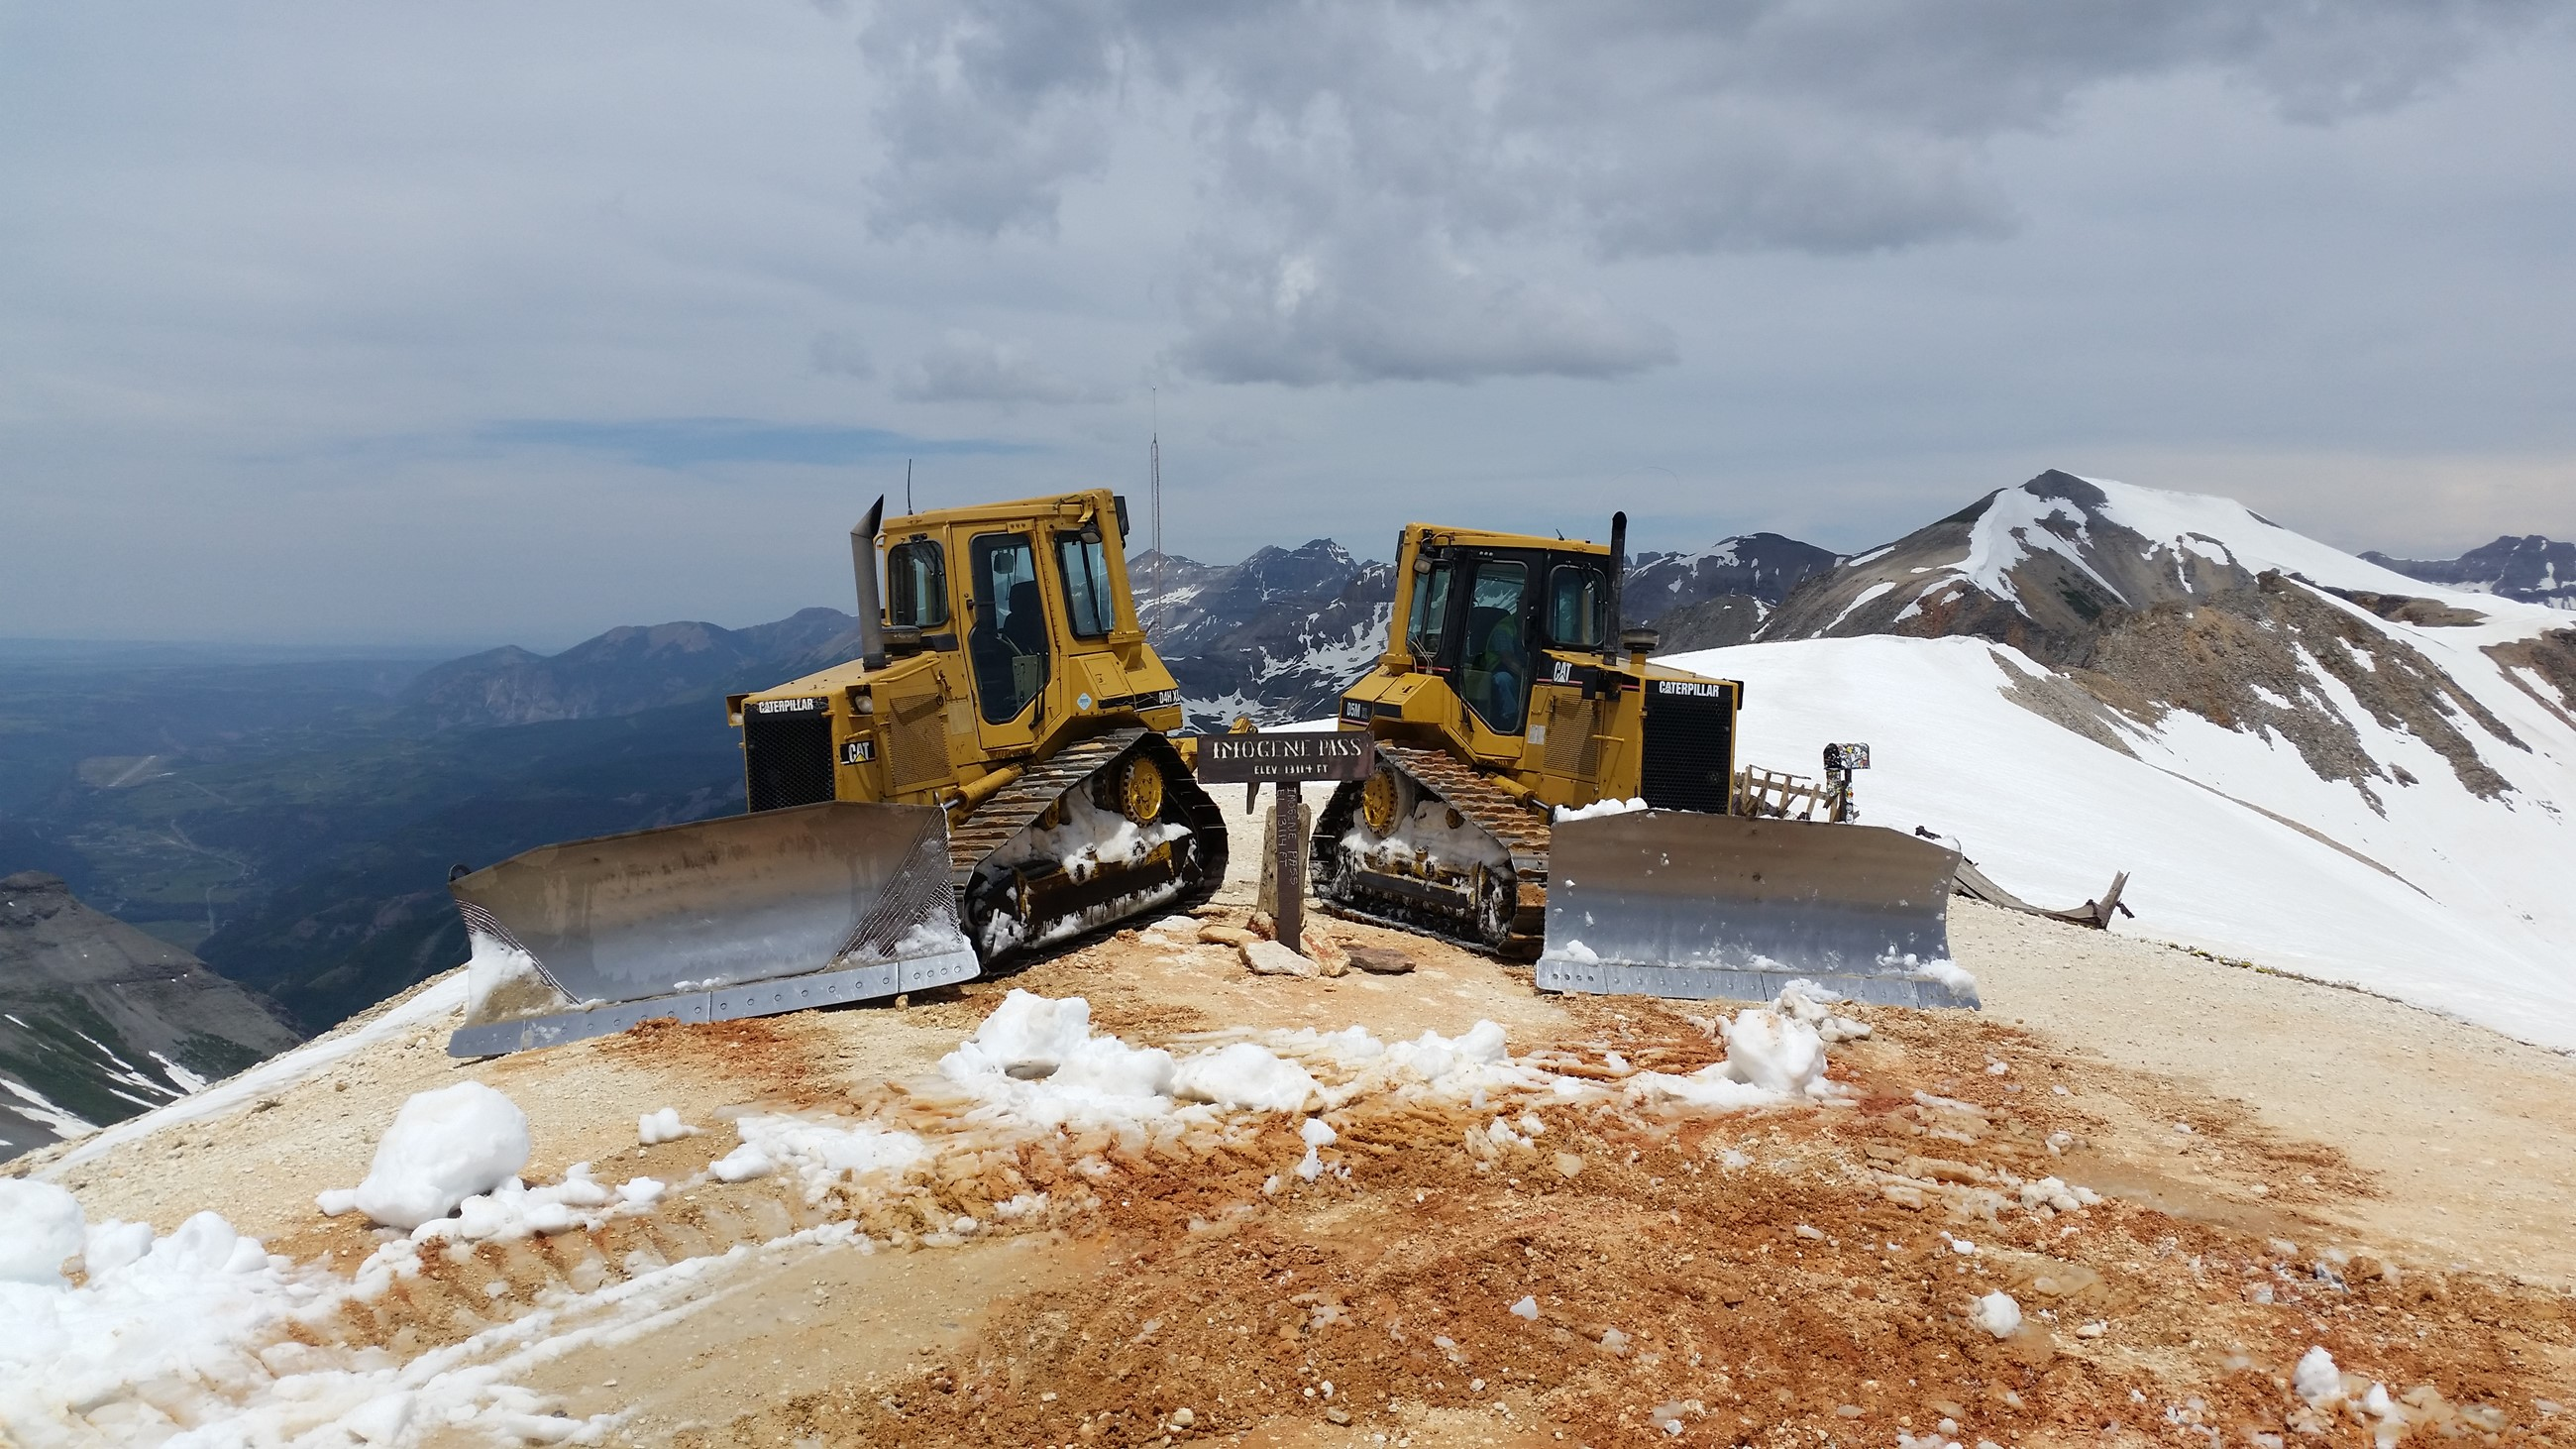 Two dozers on top of Imogene Pass